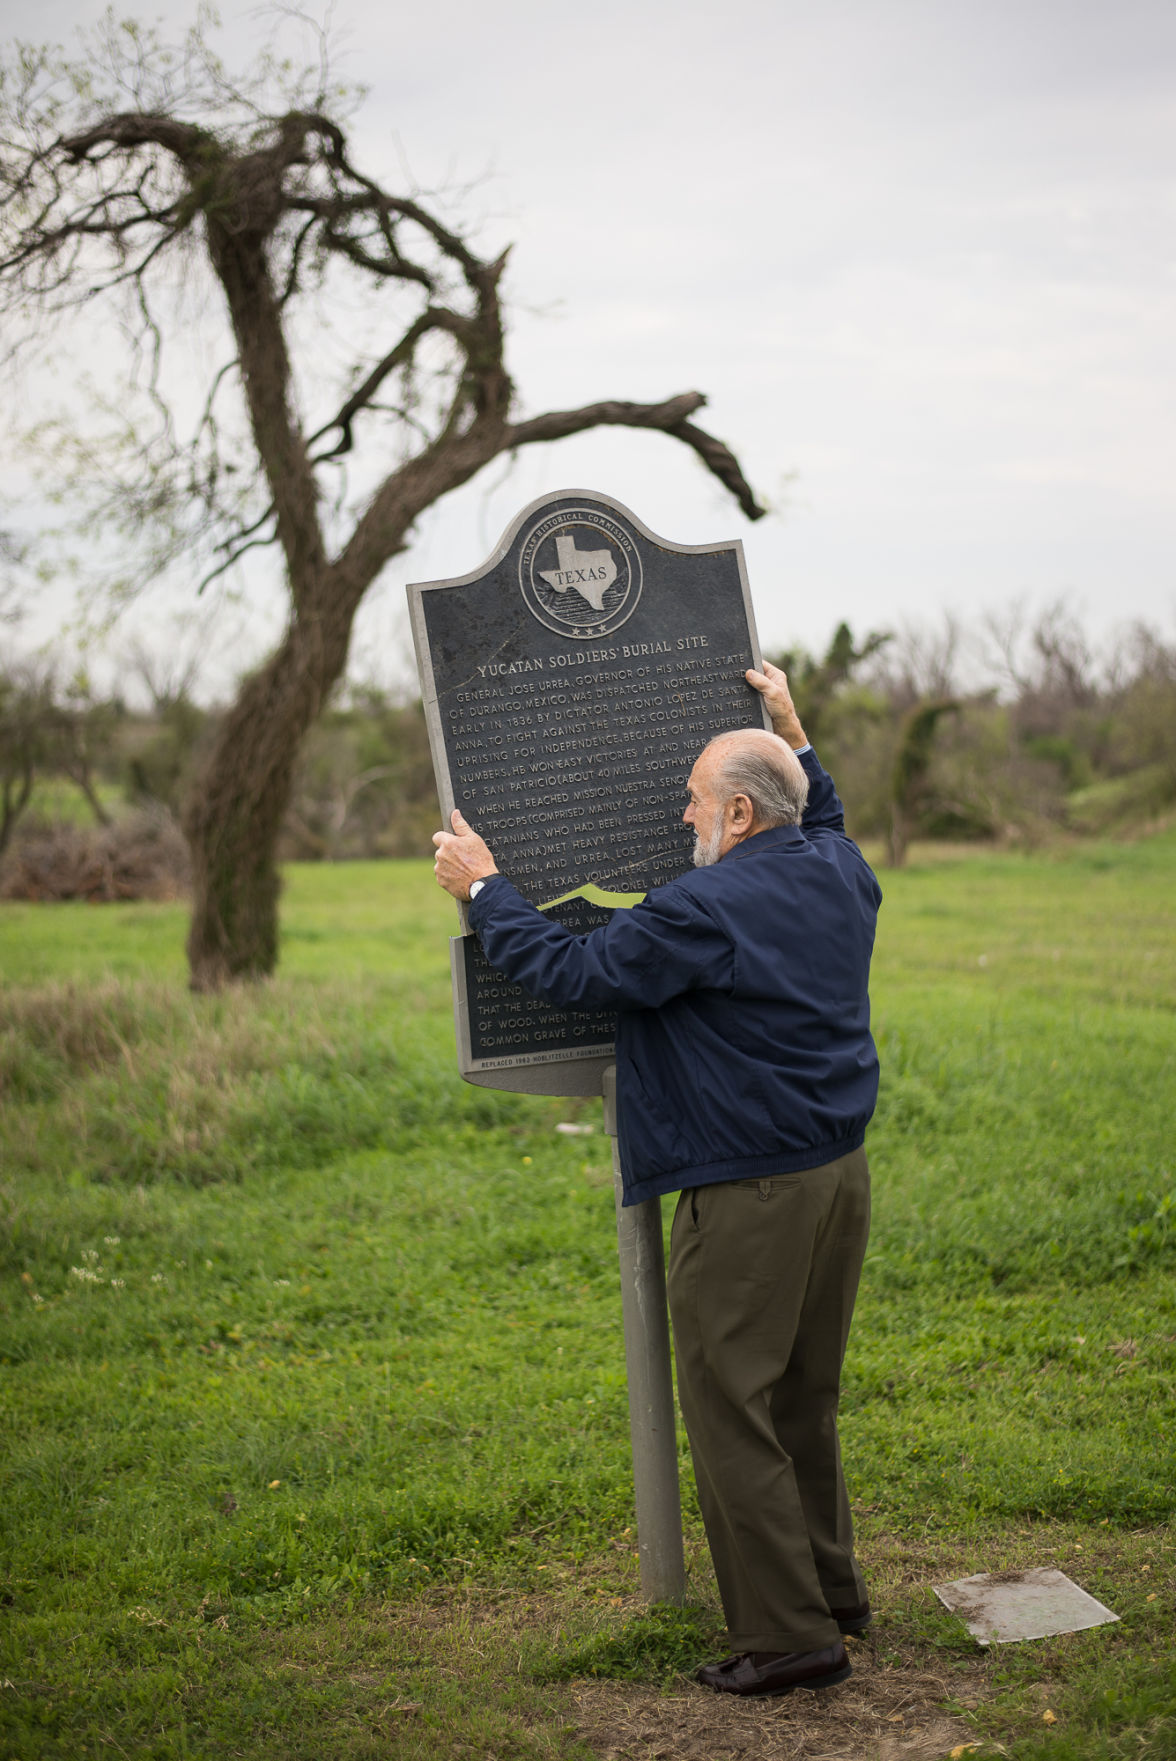 Officials work to restore historical markers